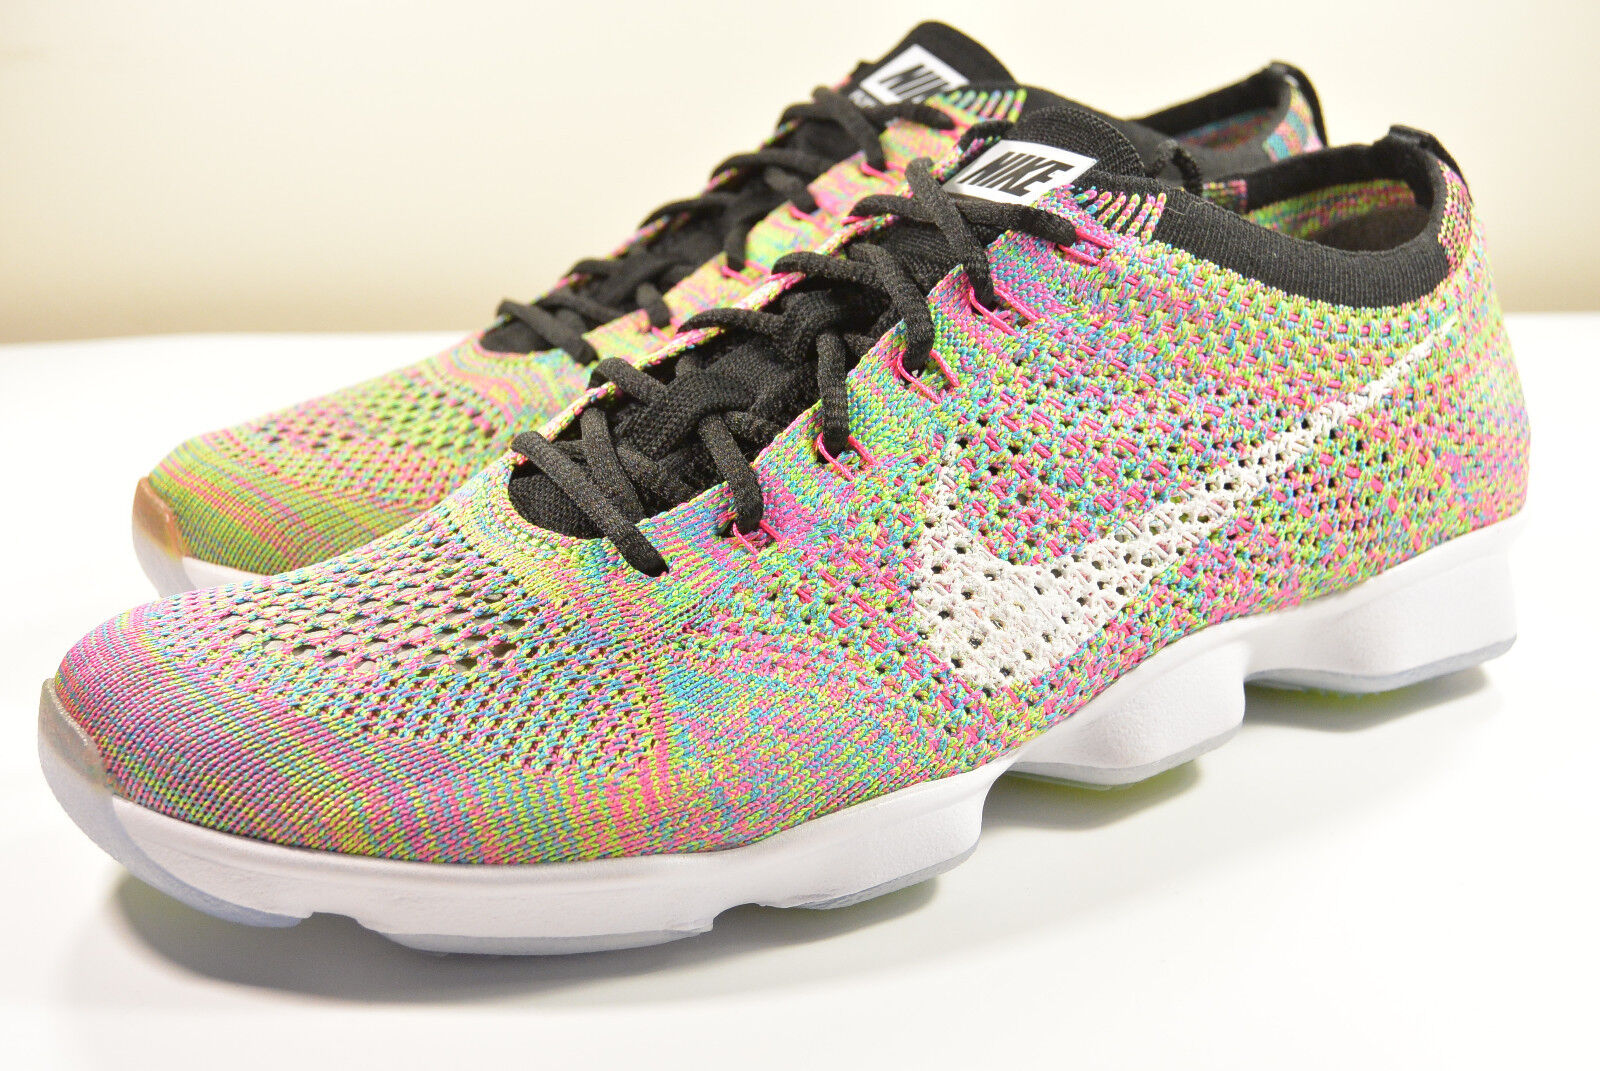 DS NIKE 2014 FLYKNIT ZOOM AGILITY MULTI COLOR M 8.5   WMN 10 AIR FORCE OLYMPIC